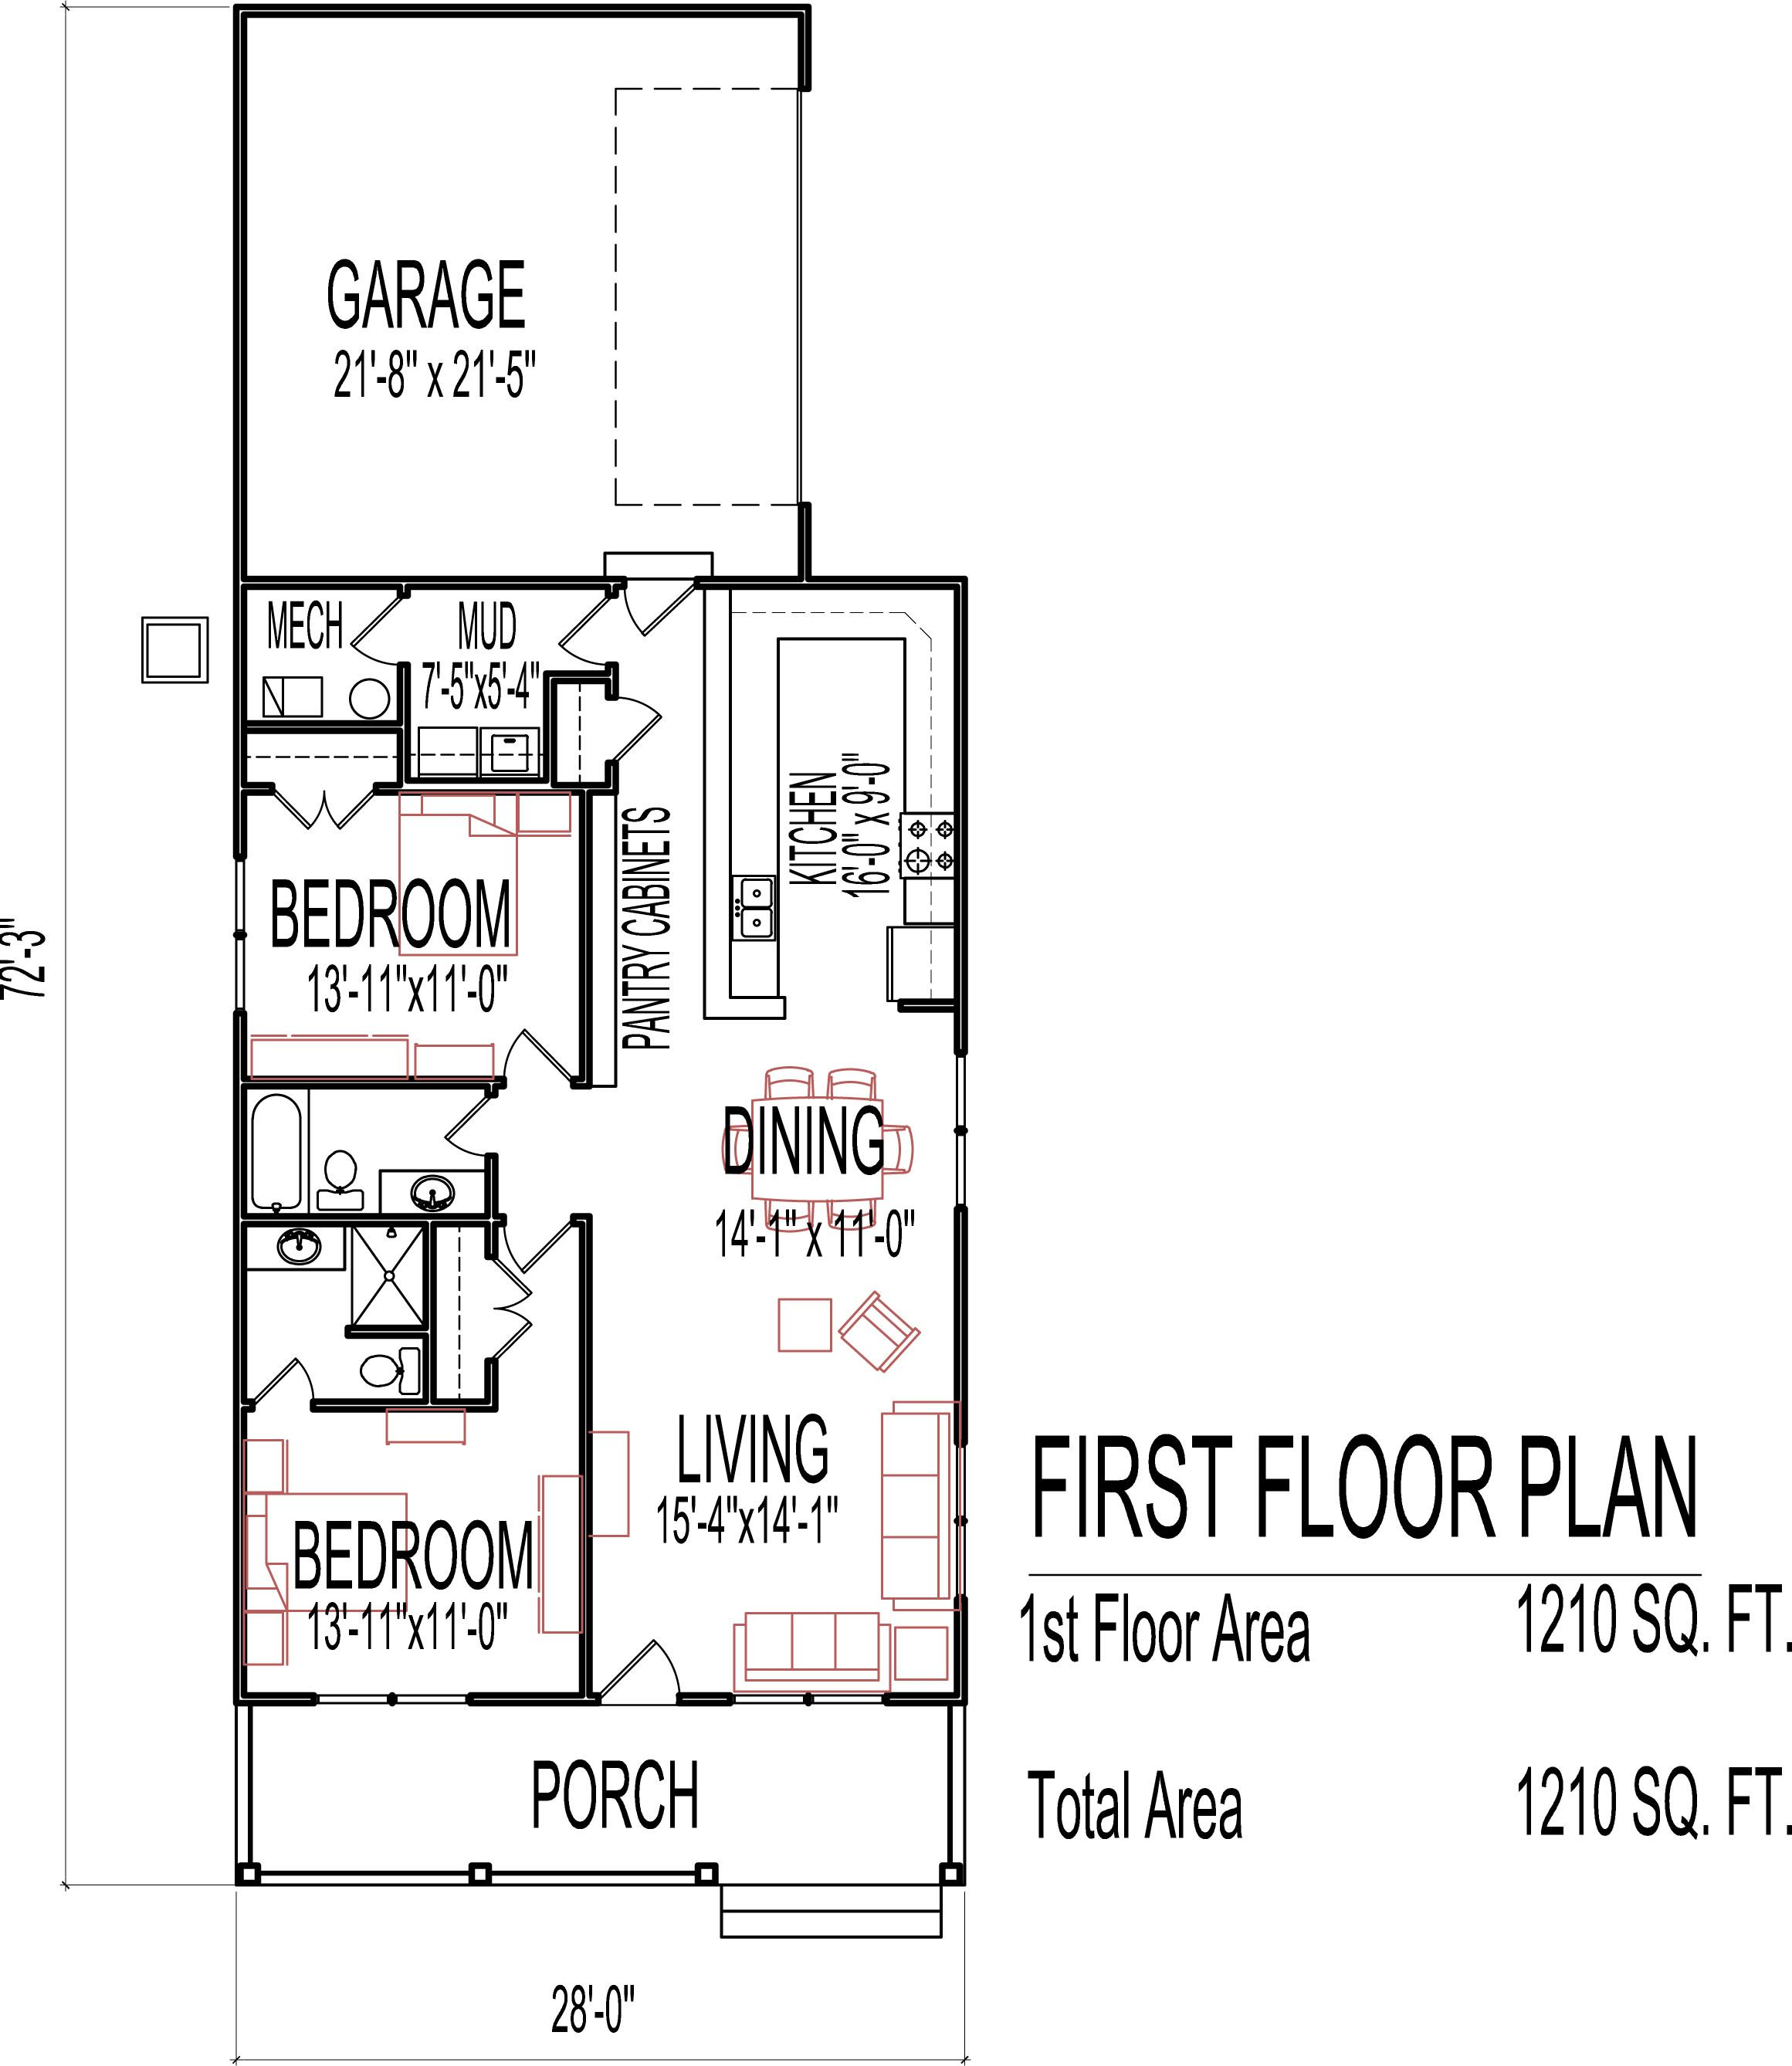 Small low cost economical 2 bedroom 2 bath 1200 sq ft for 2 bed 1 bath house plans